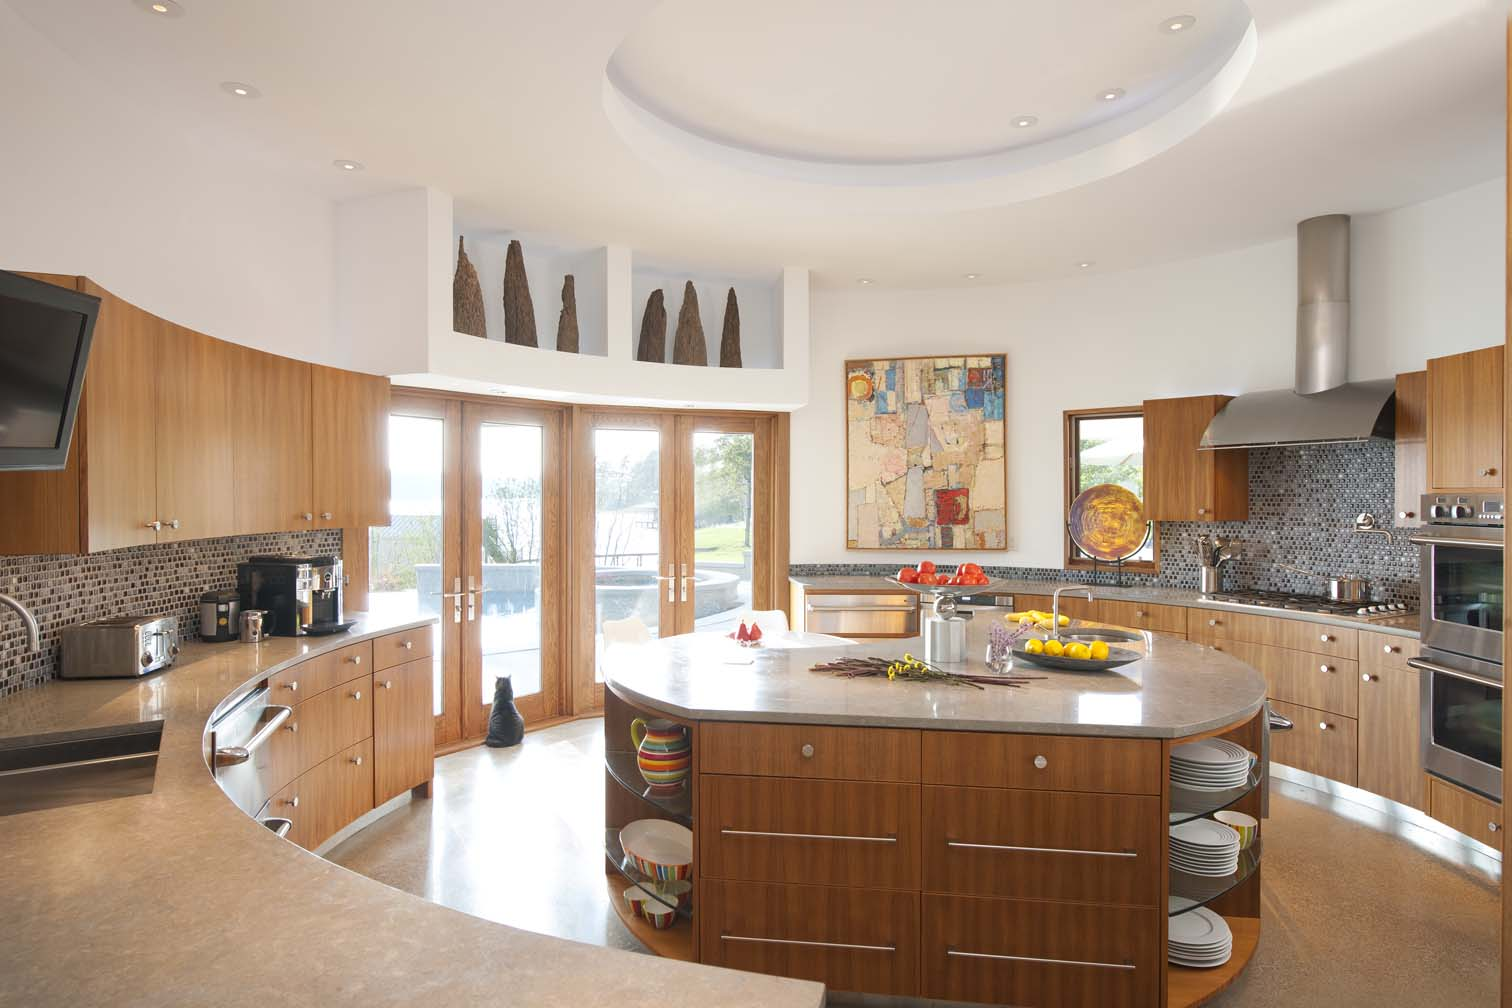 LED circular cove lighting in this round kitchen perfectly accents the circular focal island.